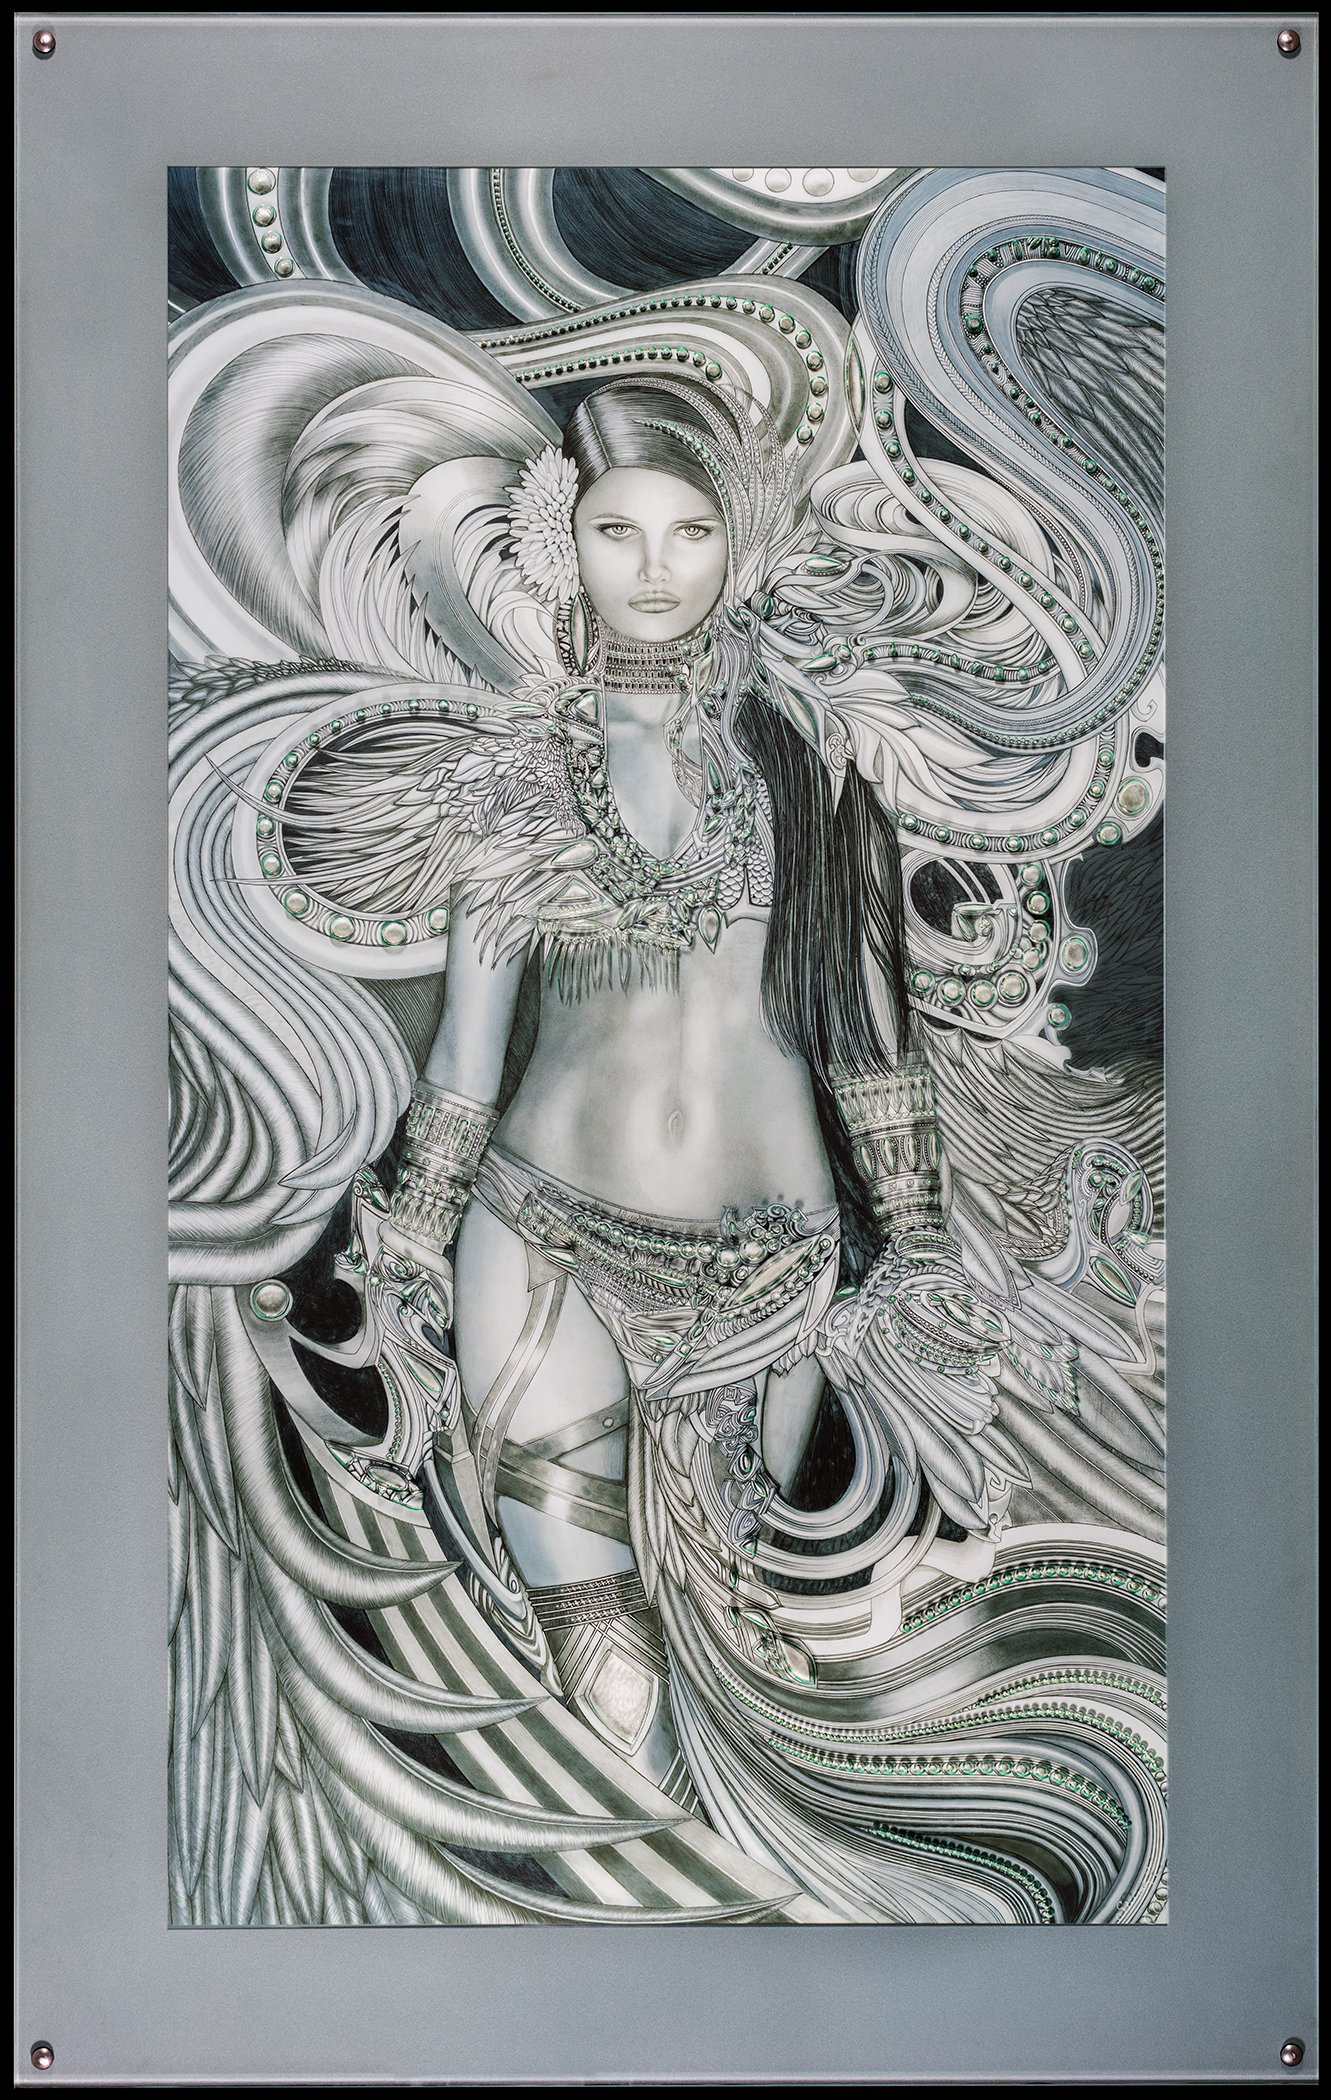 """catherine - Size: 43"""" Wide x 63"""" HighMaterials: Life Size Giclee Print, Original Carved Glass, Graphite, mixed mediaAbout the Piece: Catherine is a warrior angel, confident, unafraid, driving all darkness before her. Created by hand using graphite on Durolar."""